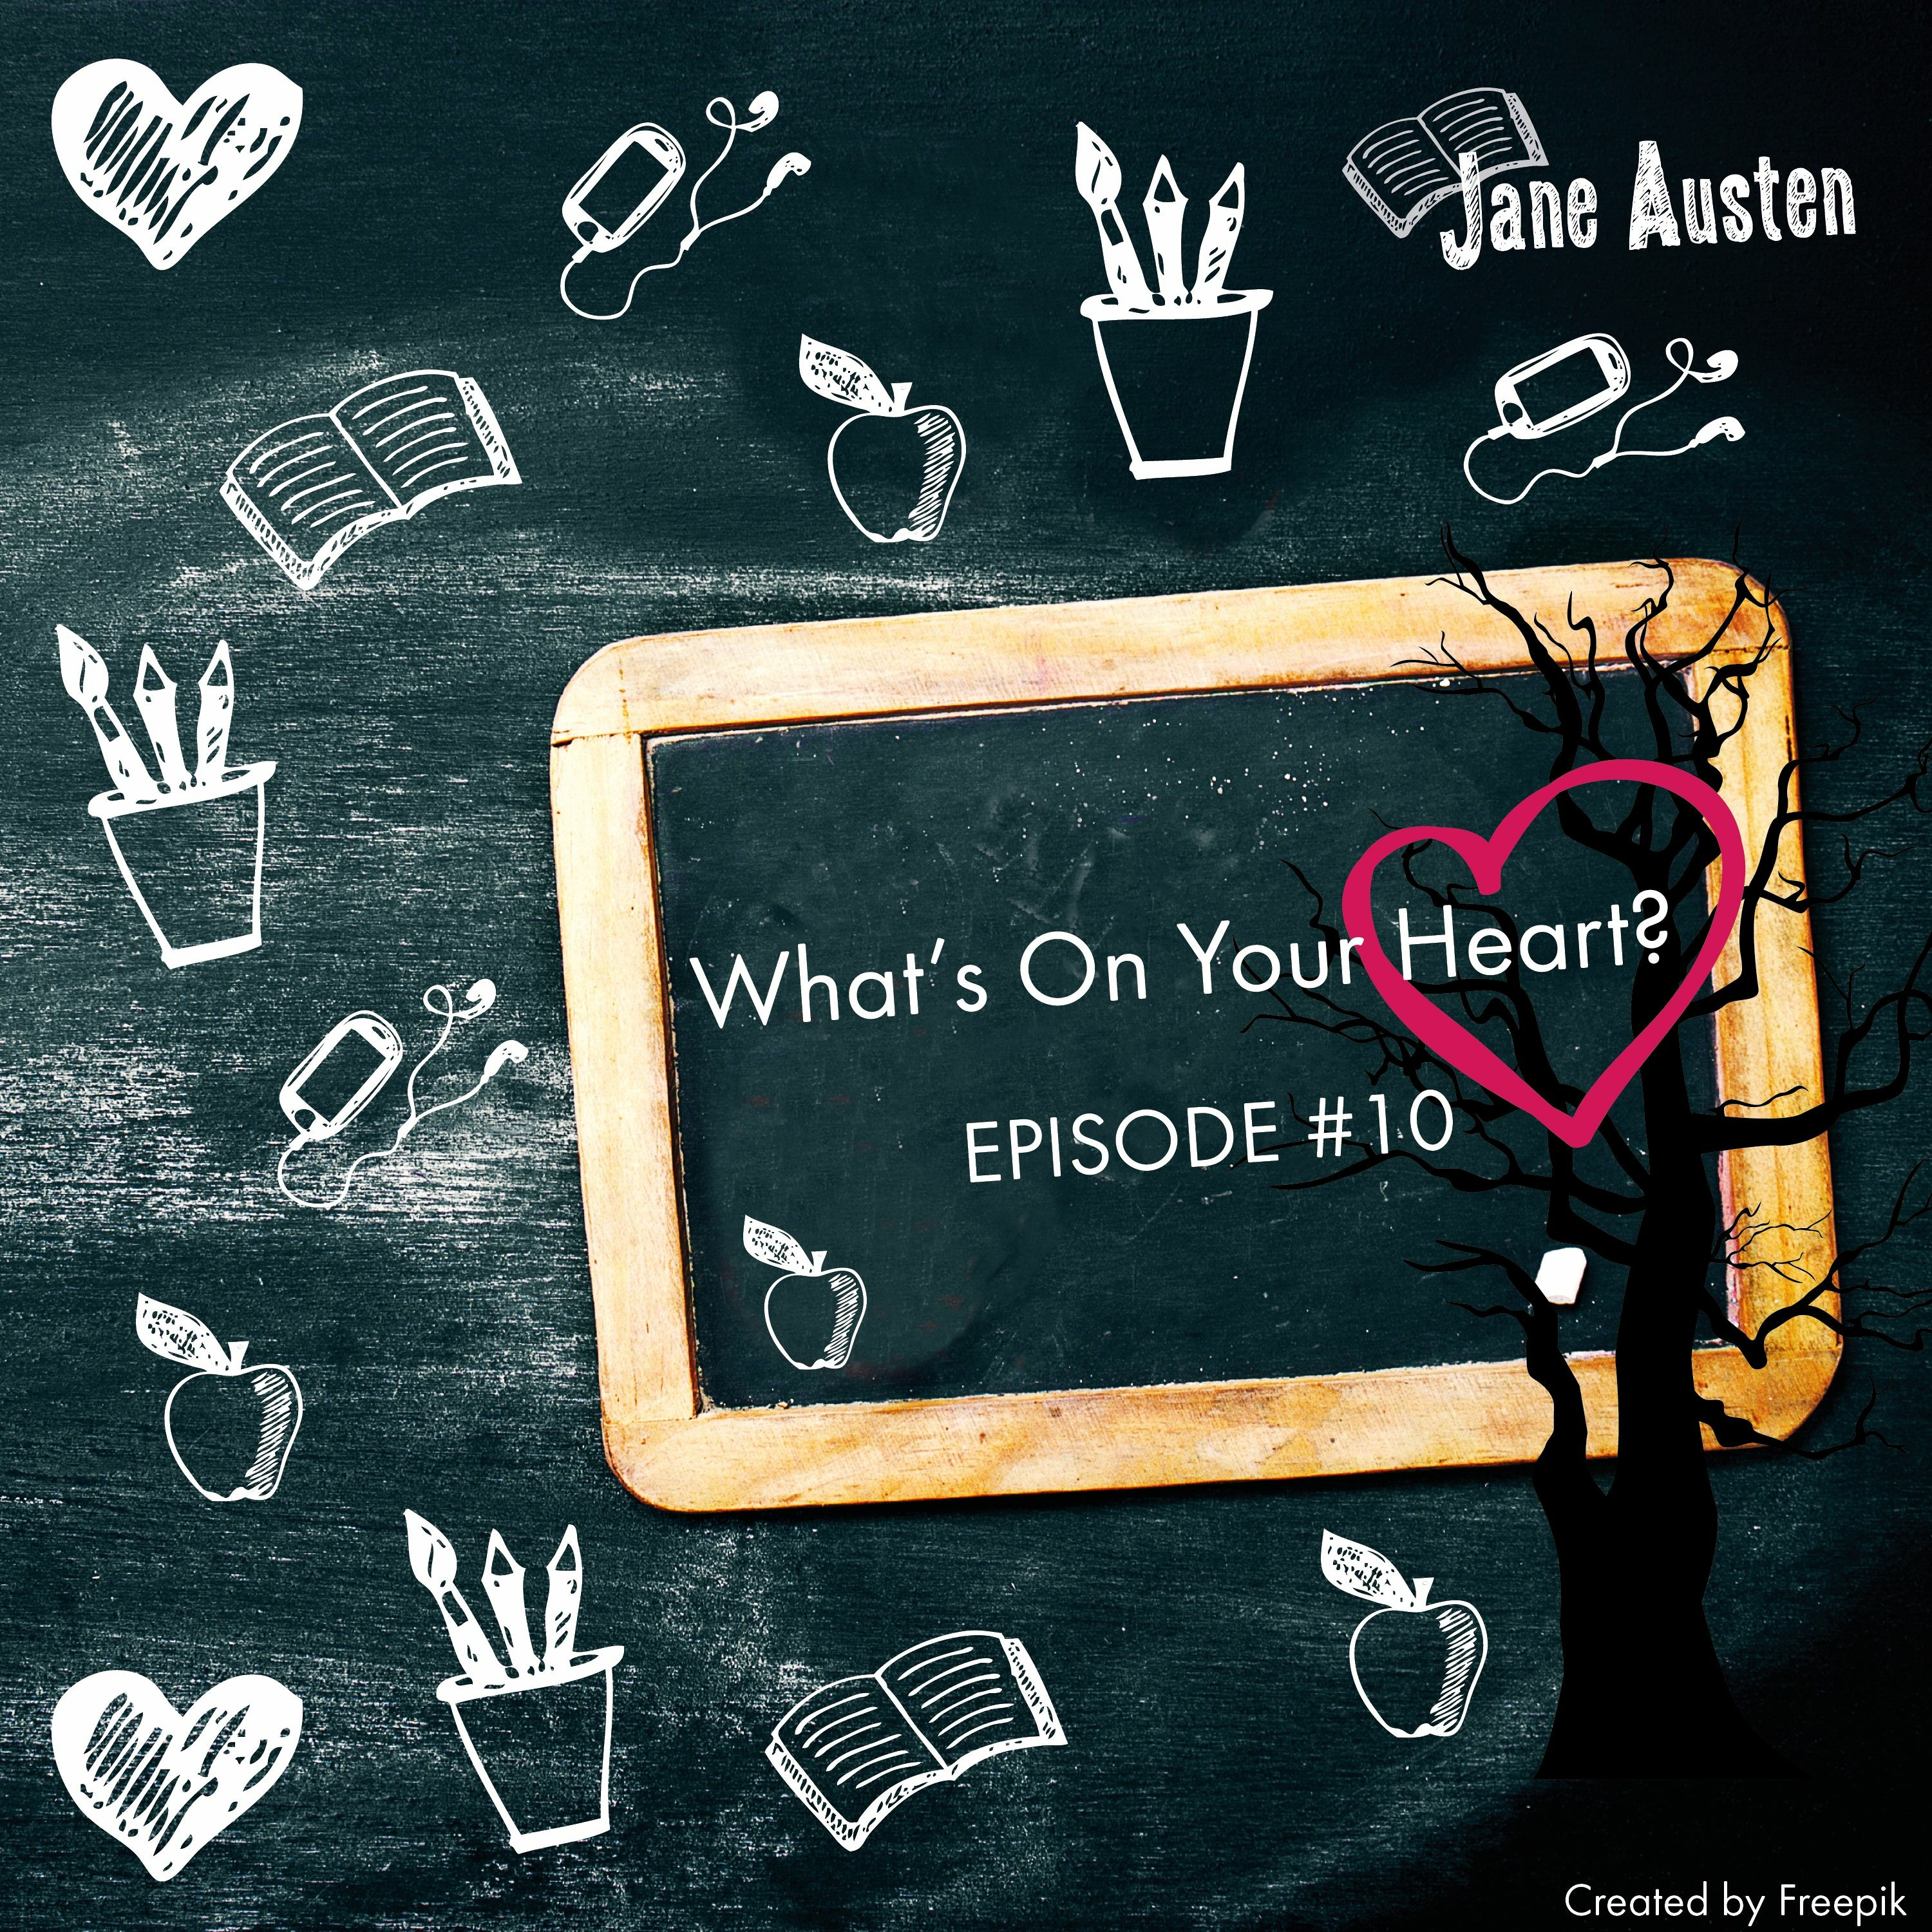 Episode 10 - What's On Your Heart?